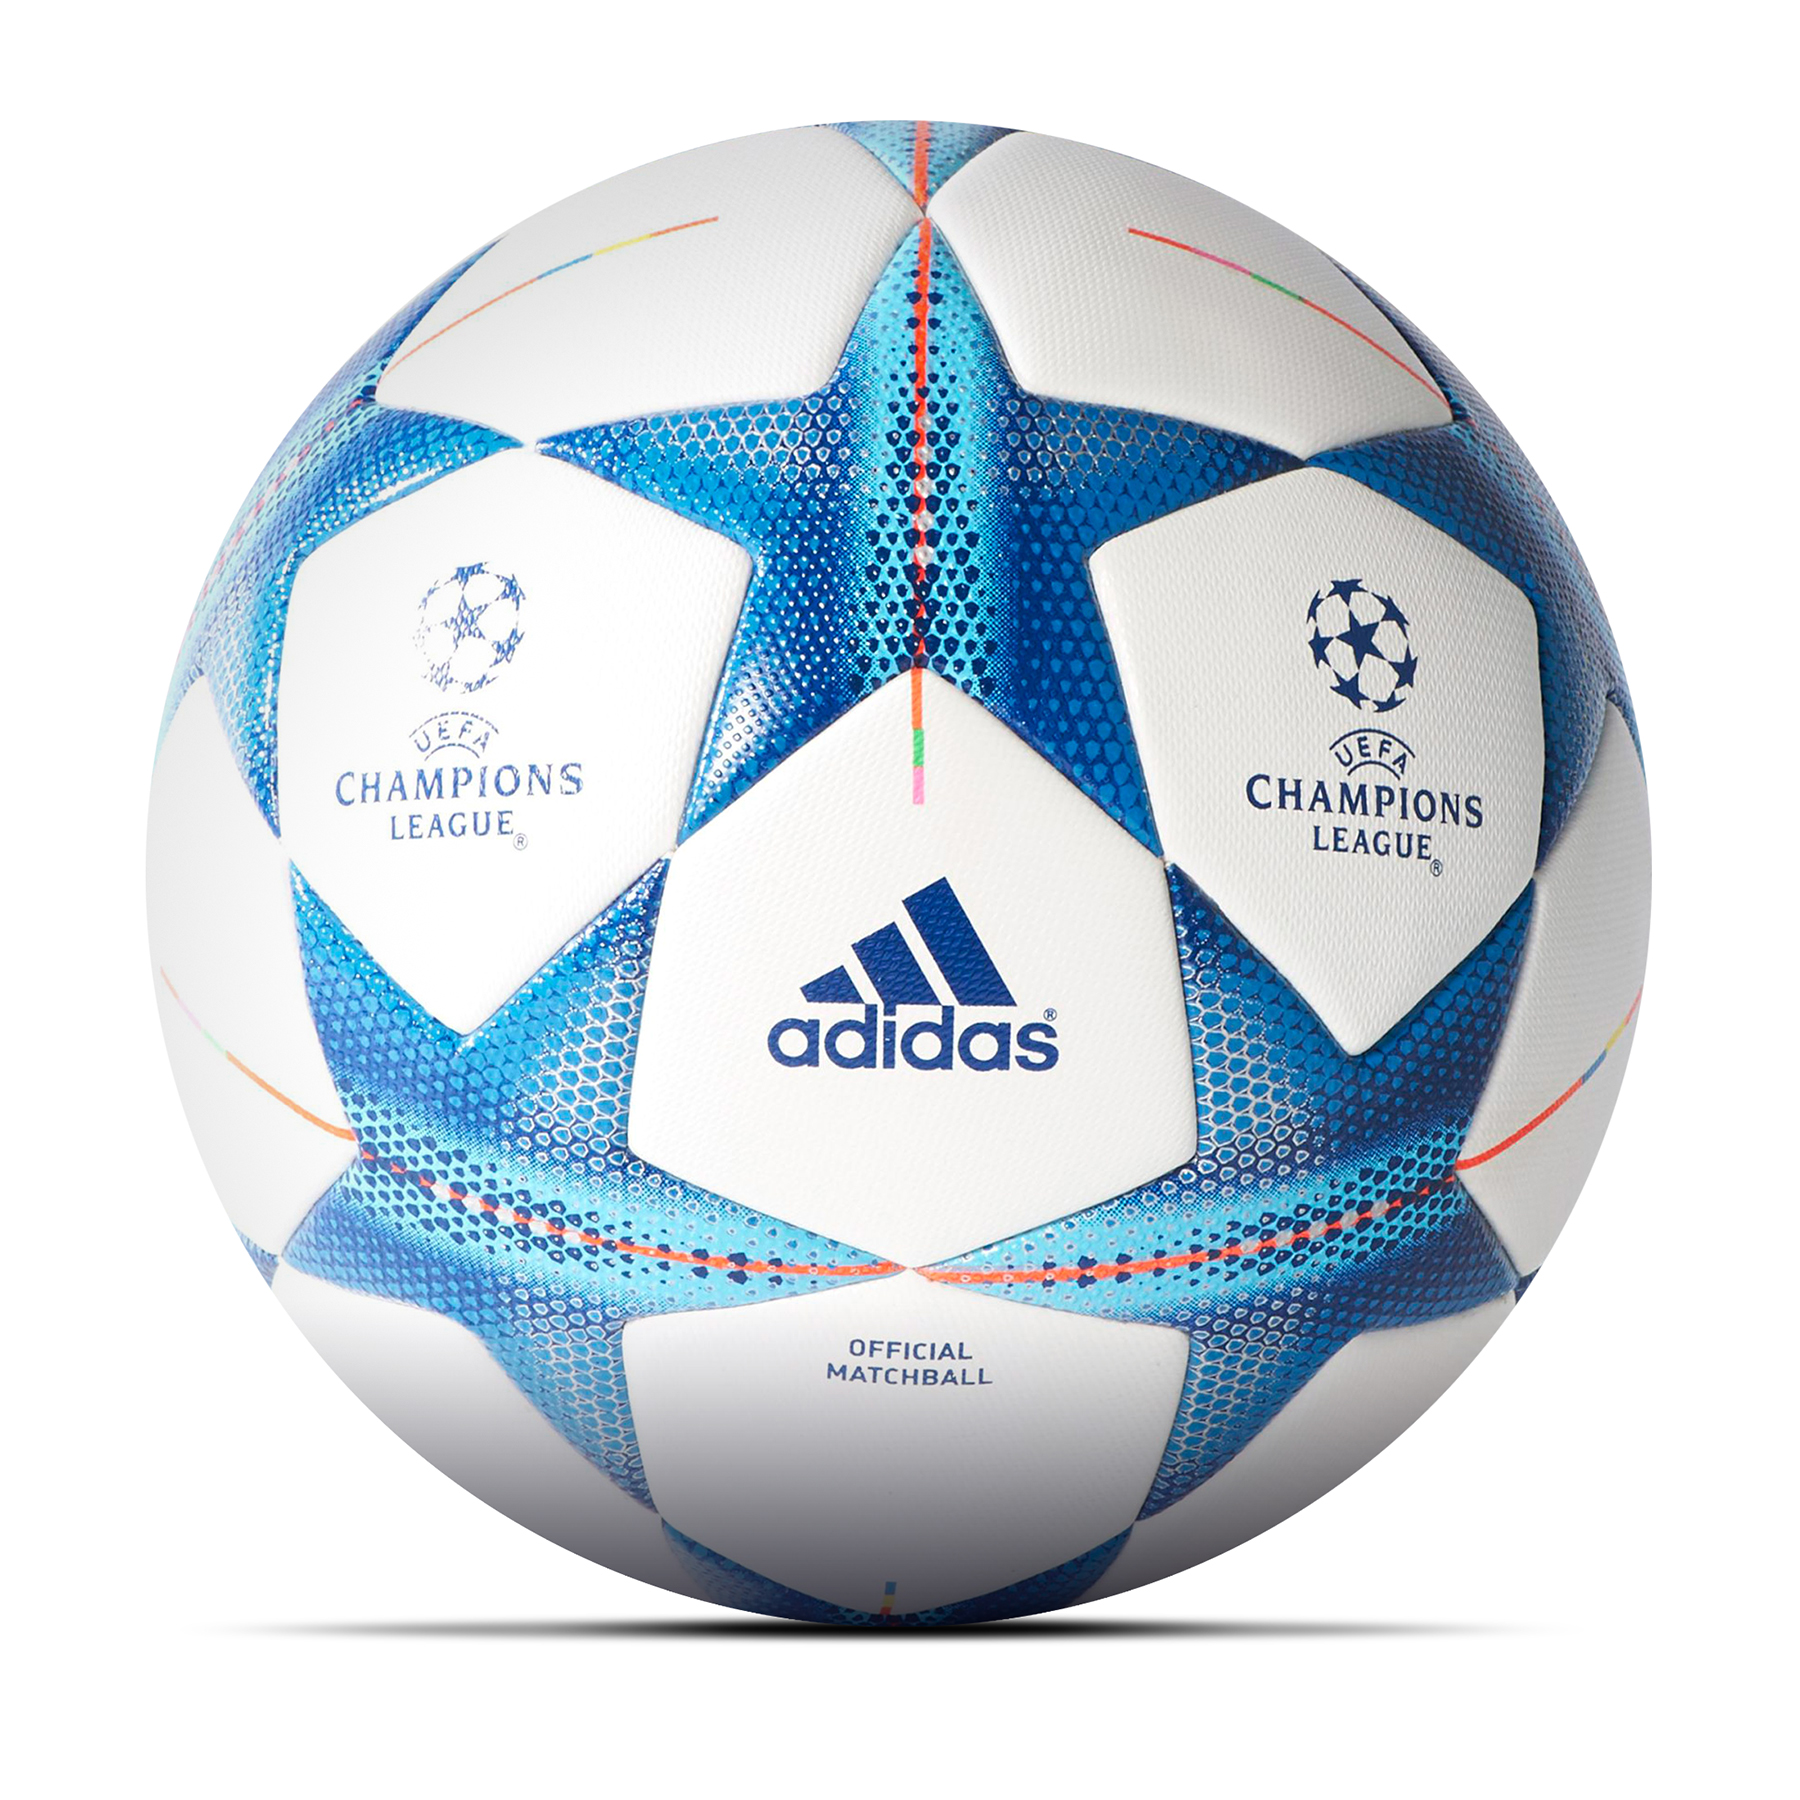 Adidas UEFA Champions League Finale 15 Official Match Football White